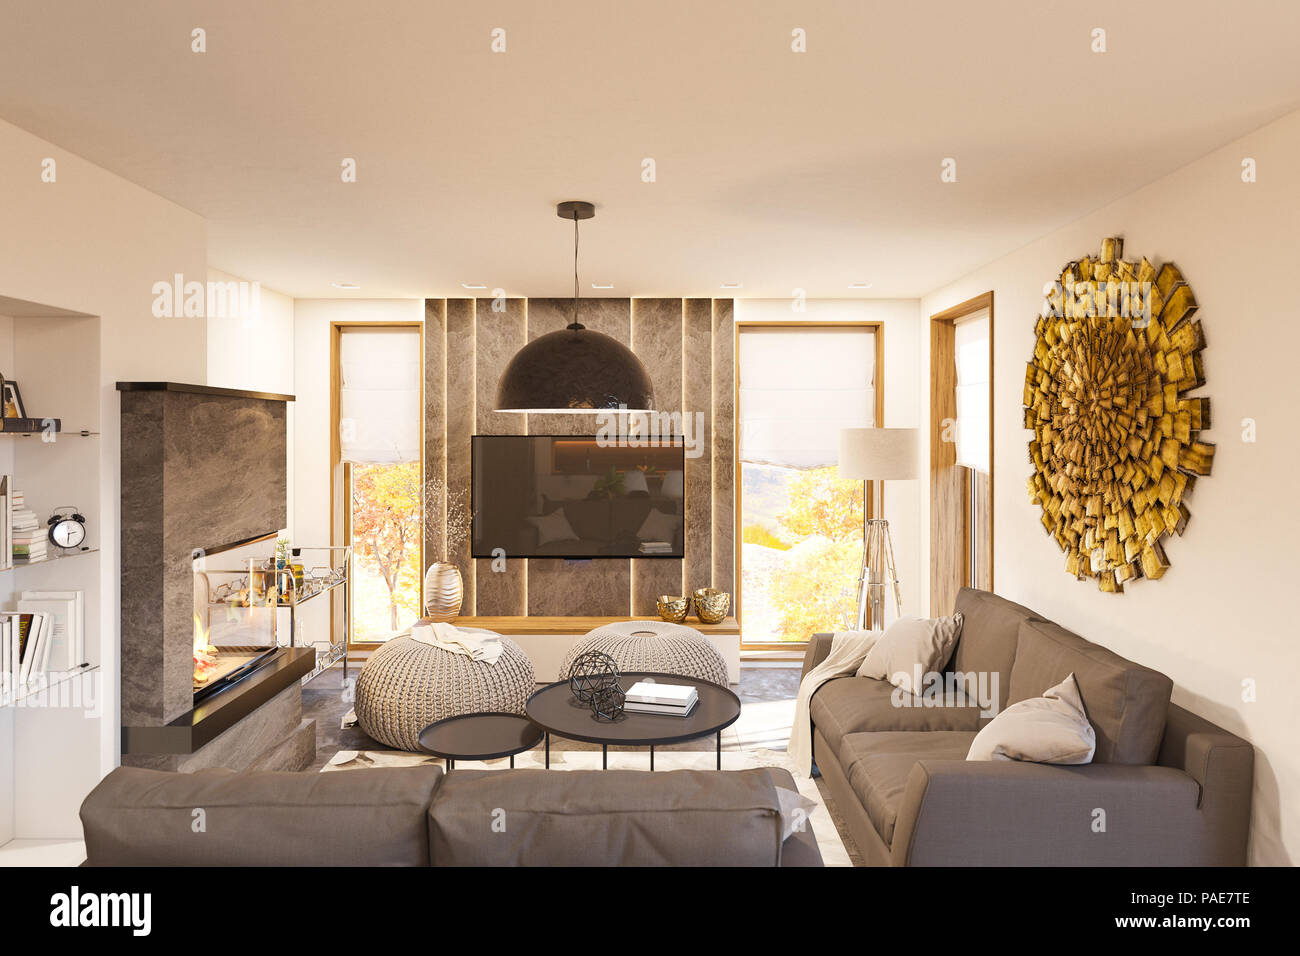 Living Room Interior Design Modern One Bedroom Studio